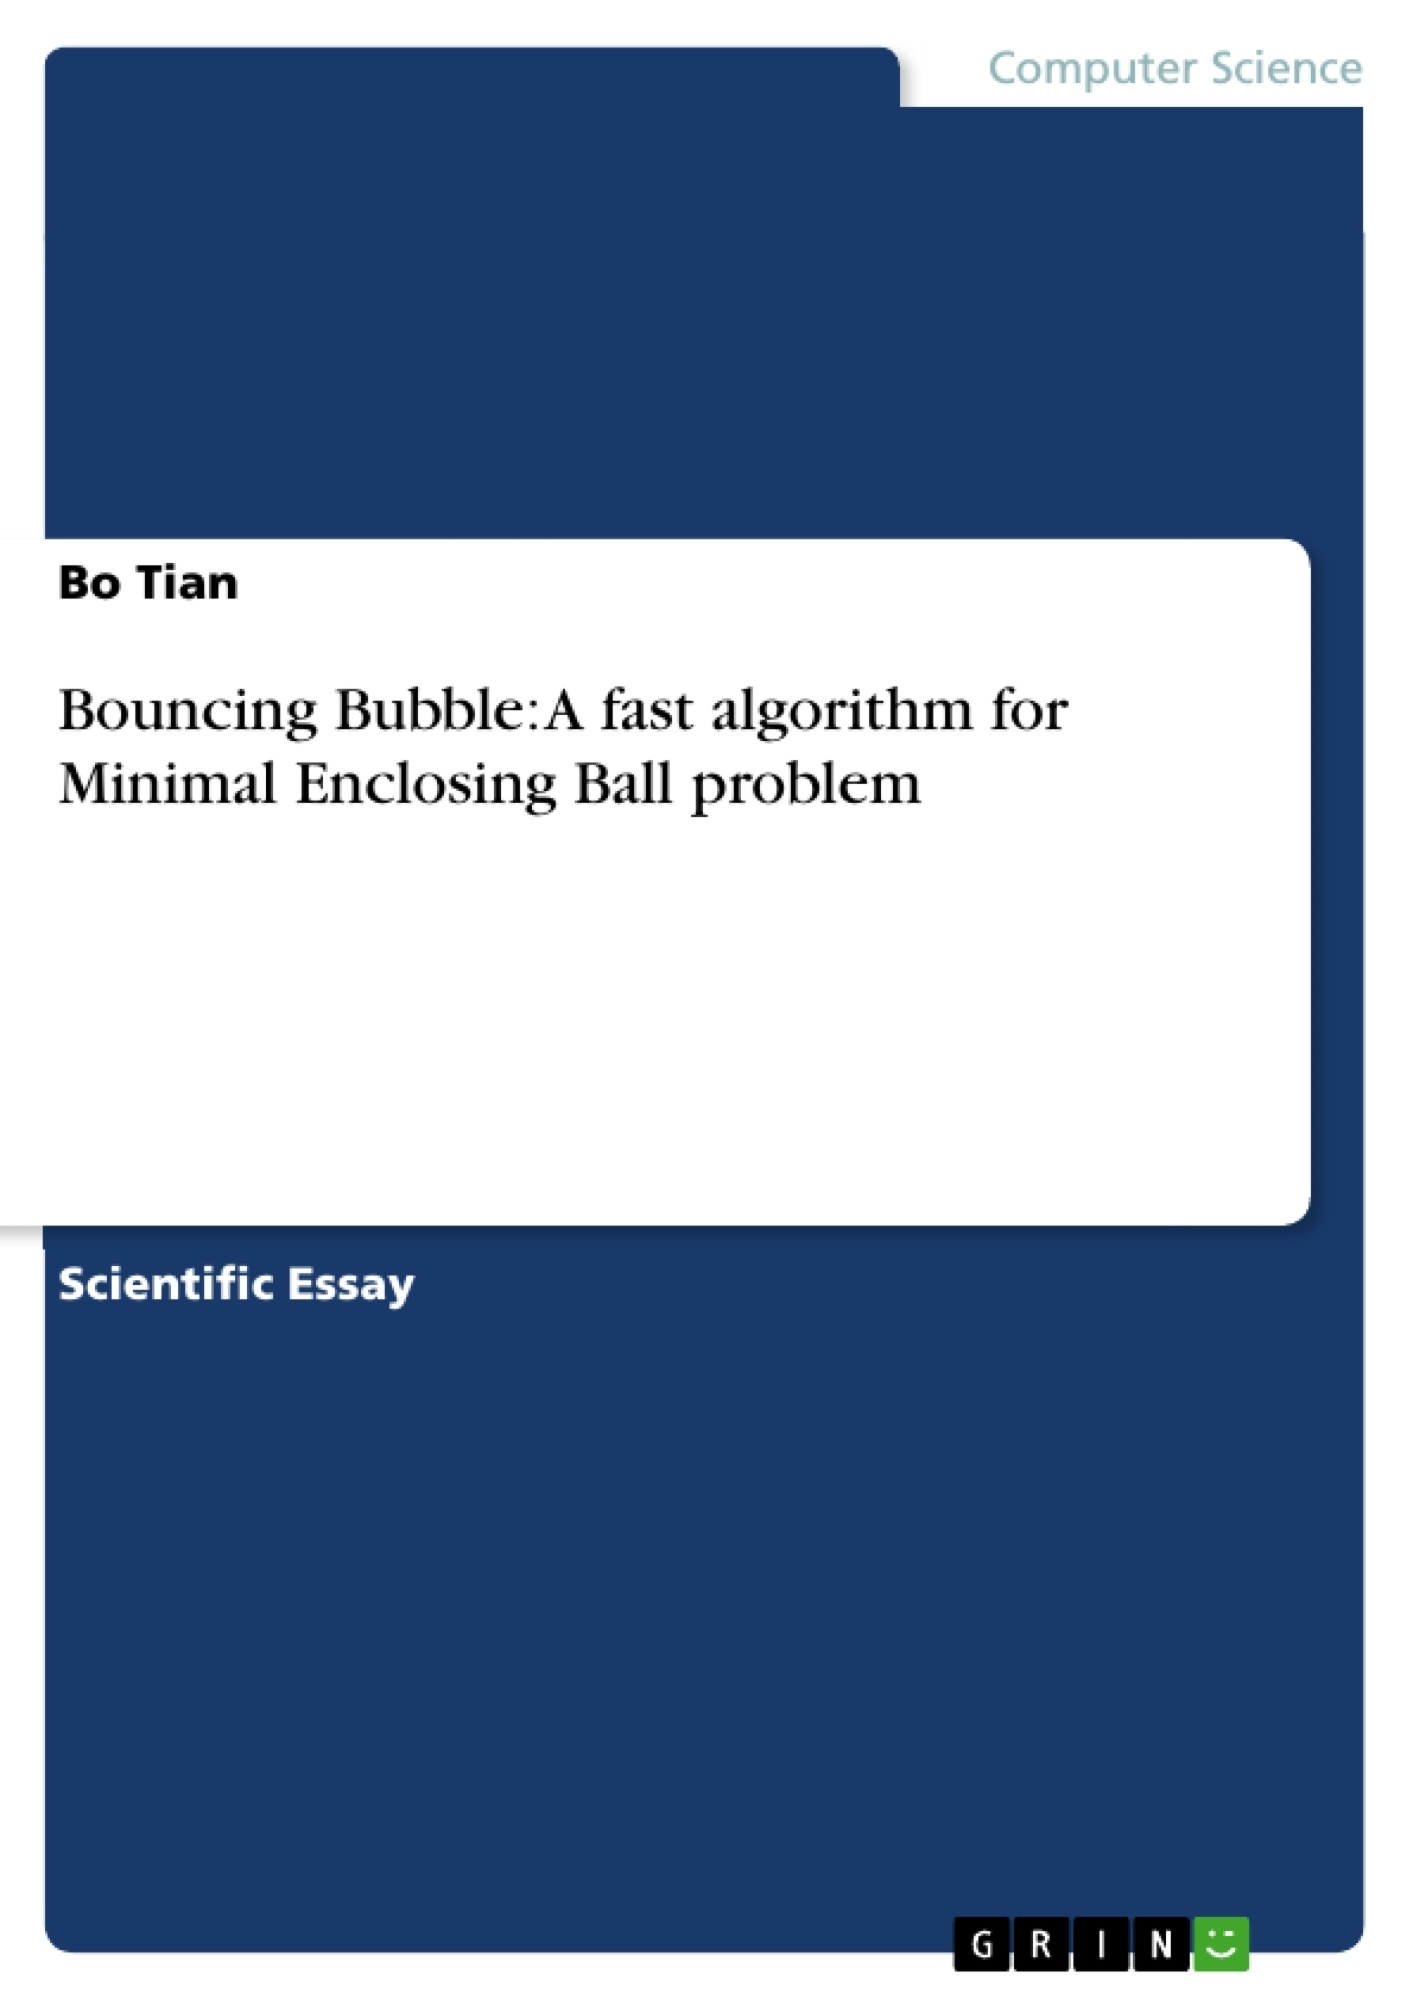 Title: Bouncing Bubble: A fast algorithm for Minimal Enclosing Ball problem